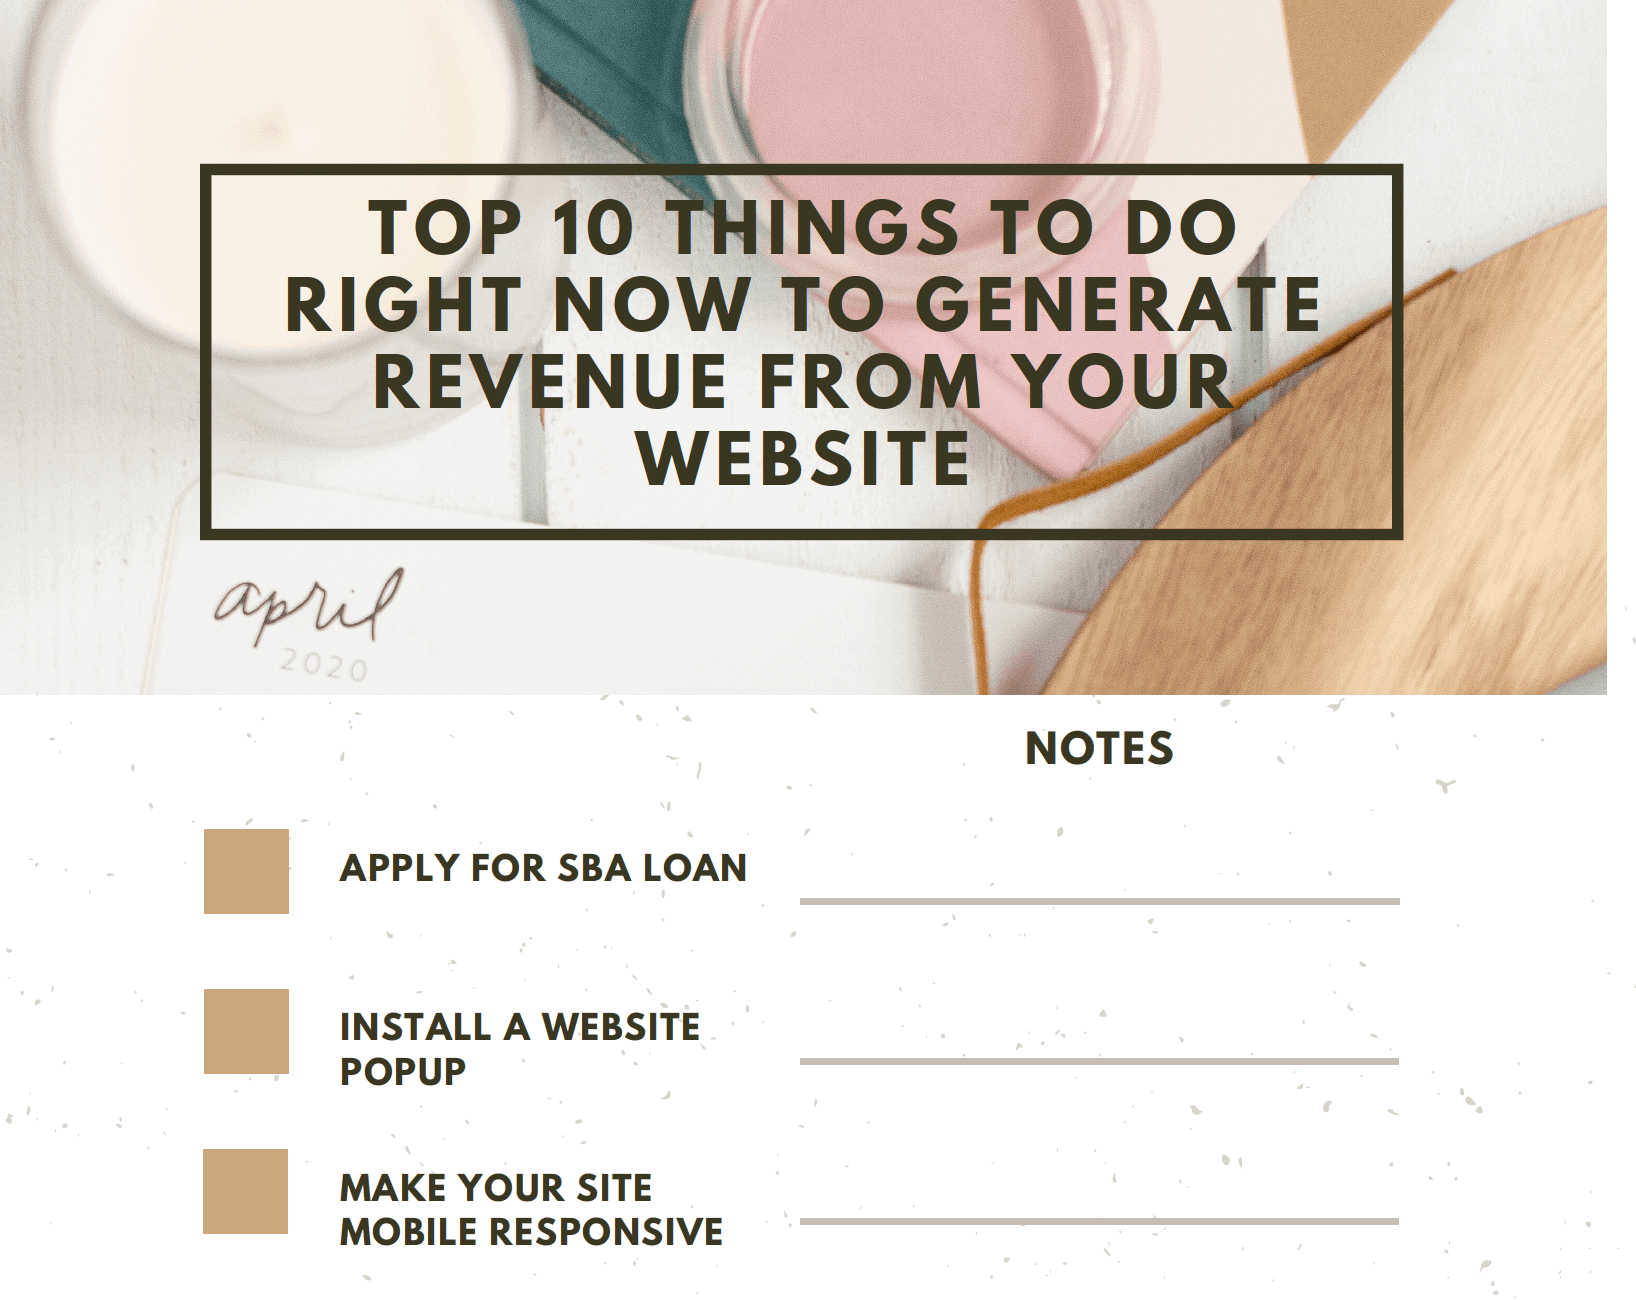 generate revenue from your website 2